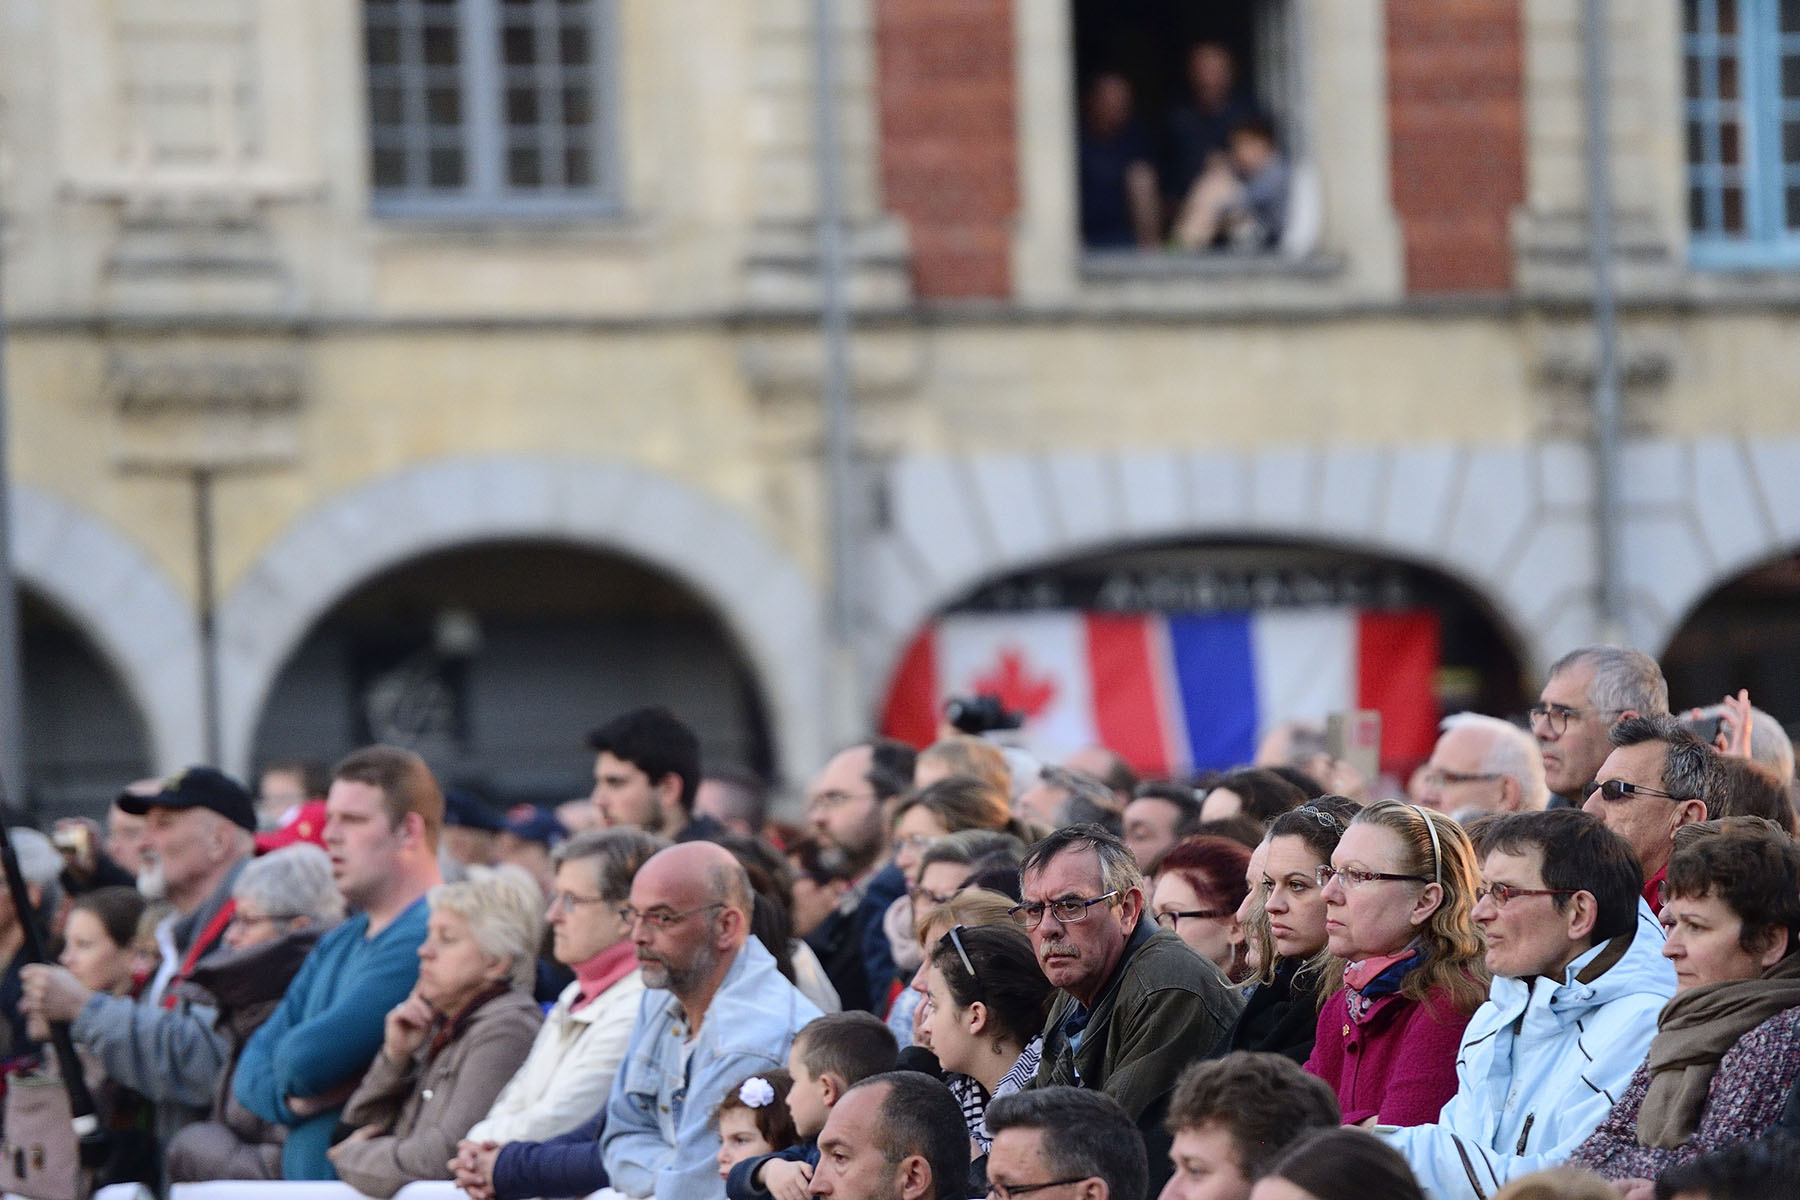 The concert was hosted by the Government of Canada and the City of Arras to honour and remember our Canadian soldiers' achievements and sacrifices during the First World War.